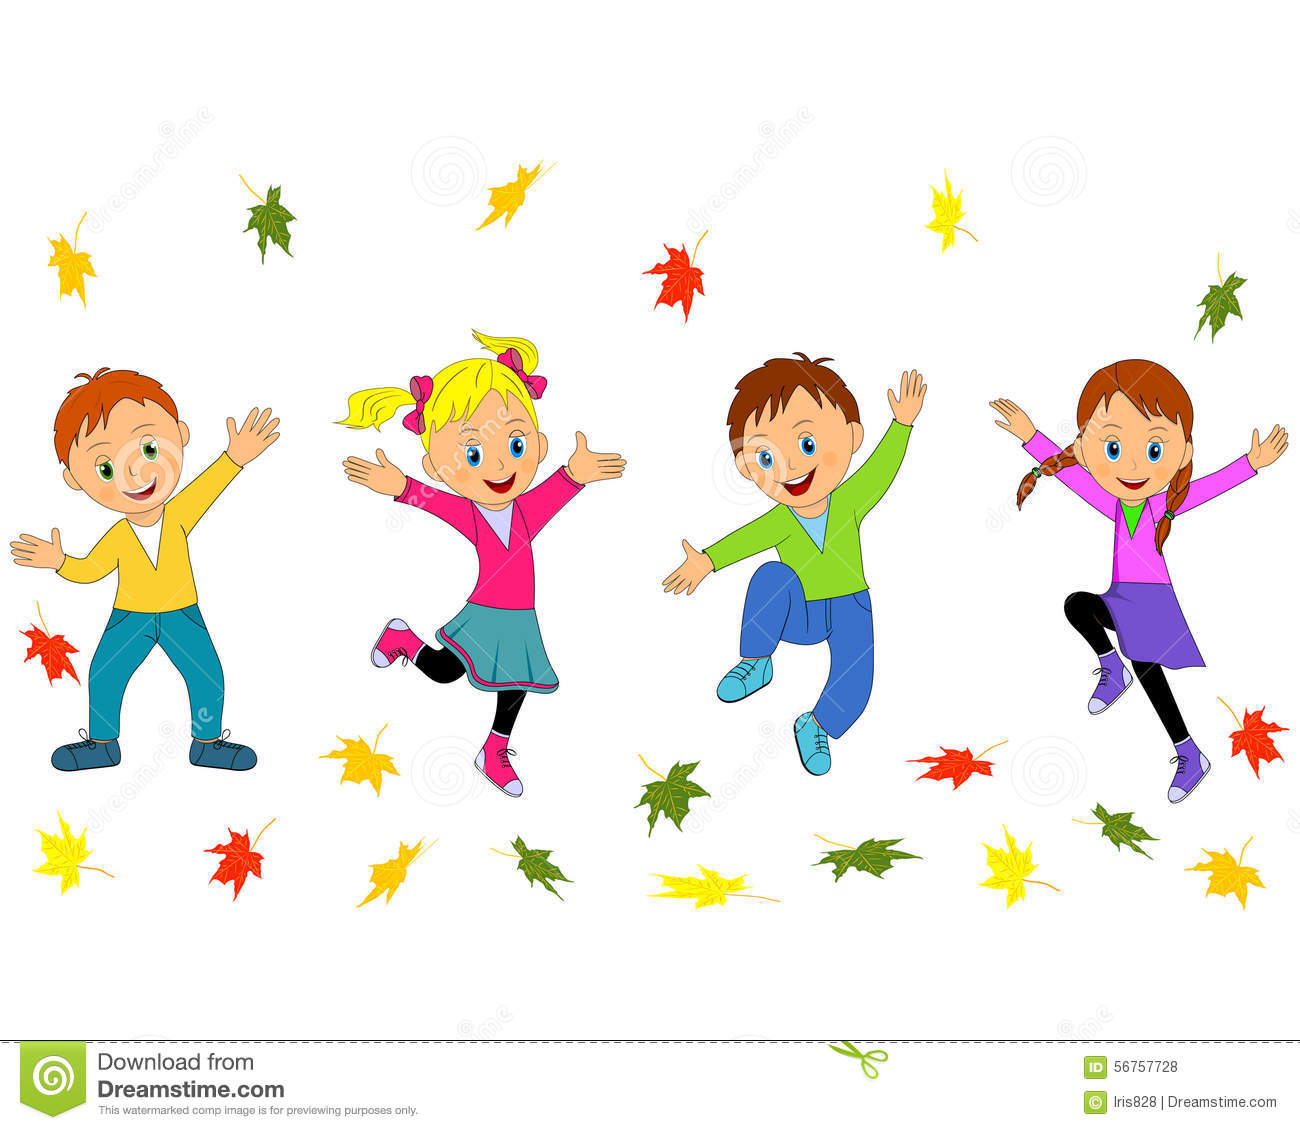 children boys and girls jumping and waving their hands child playing clipart kid playing clipart